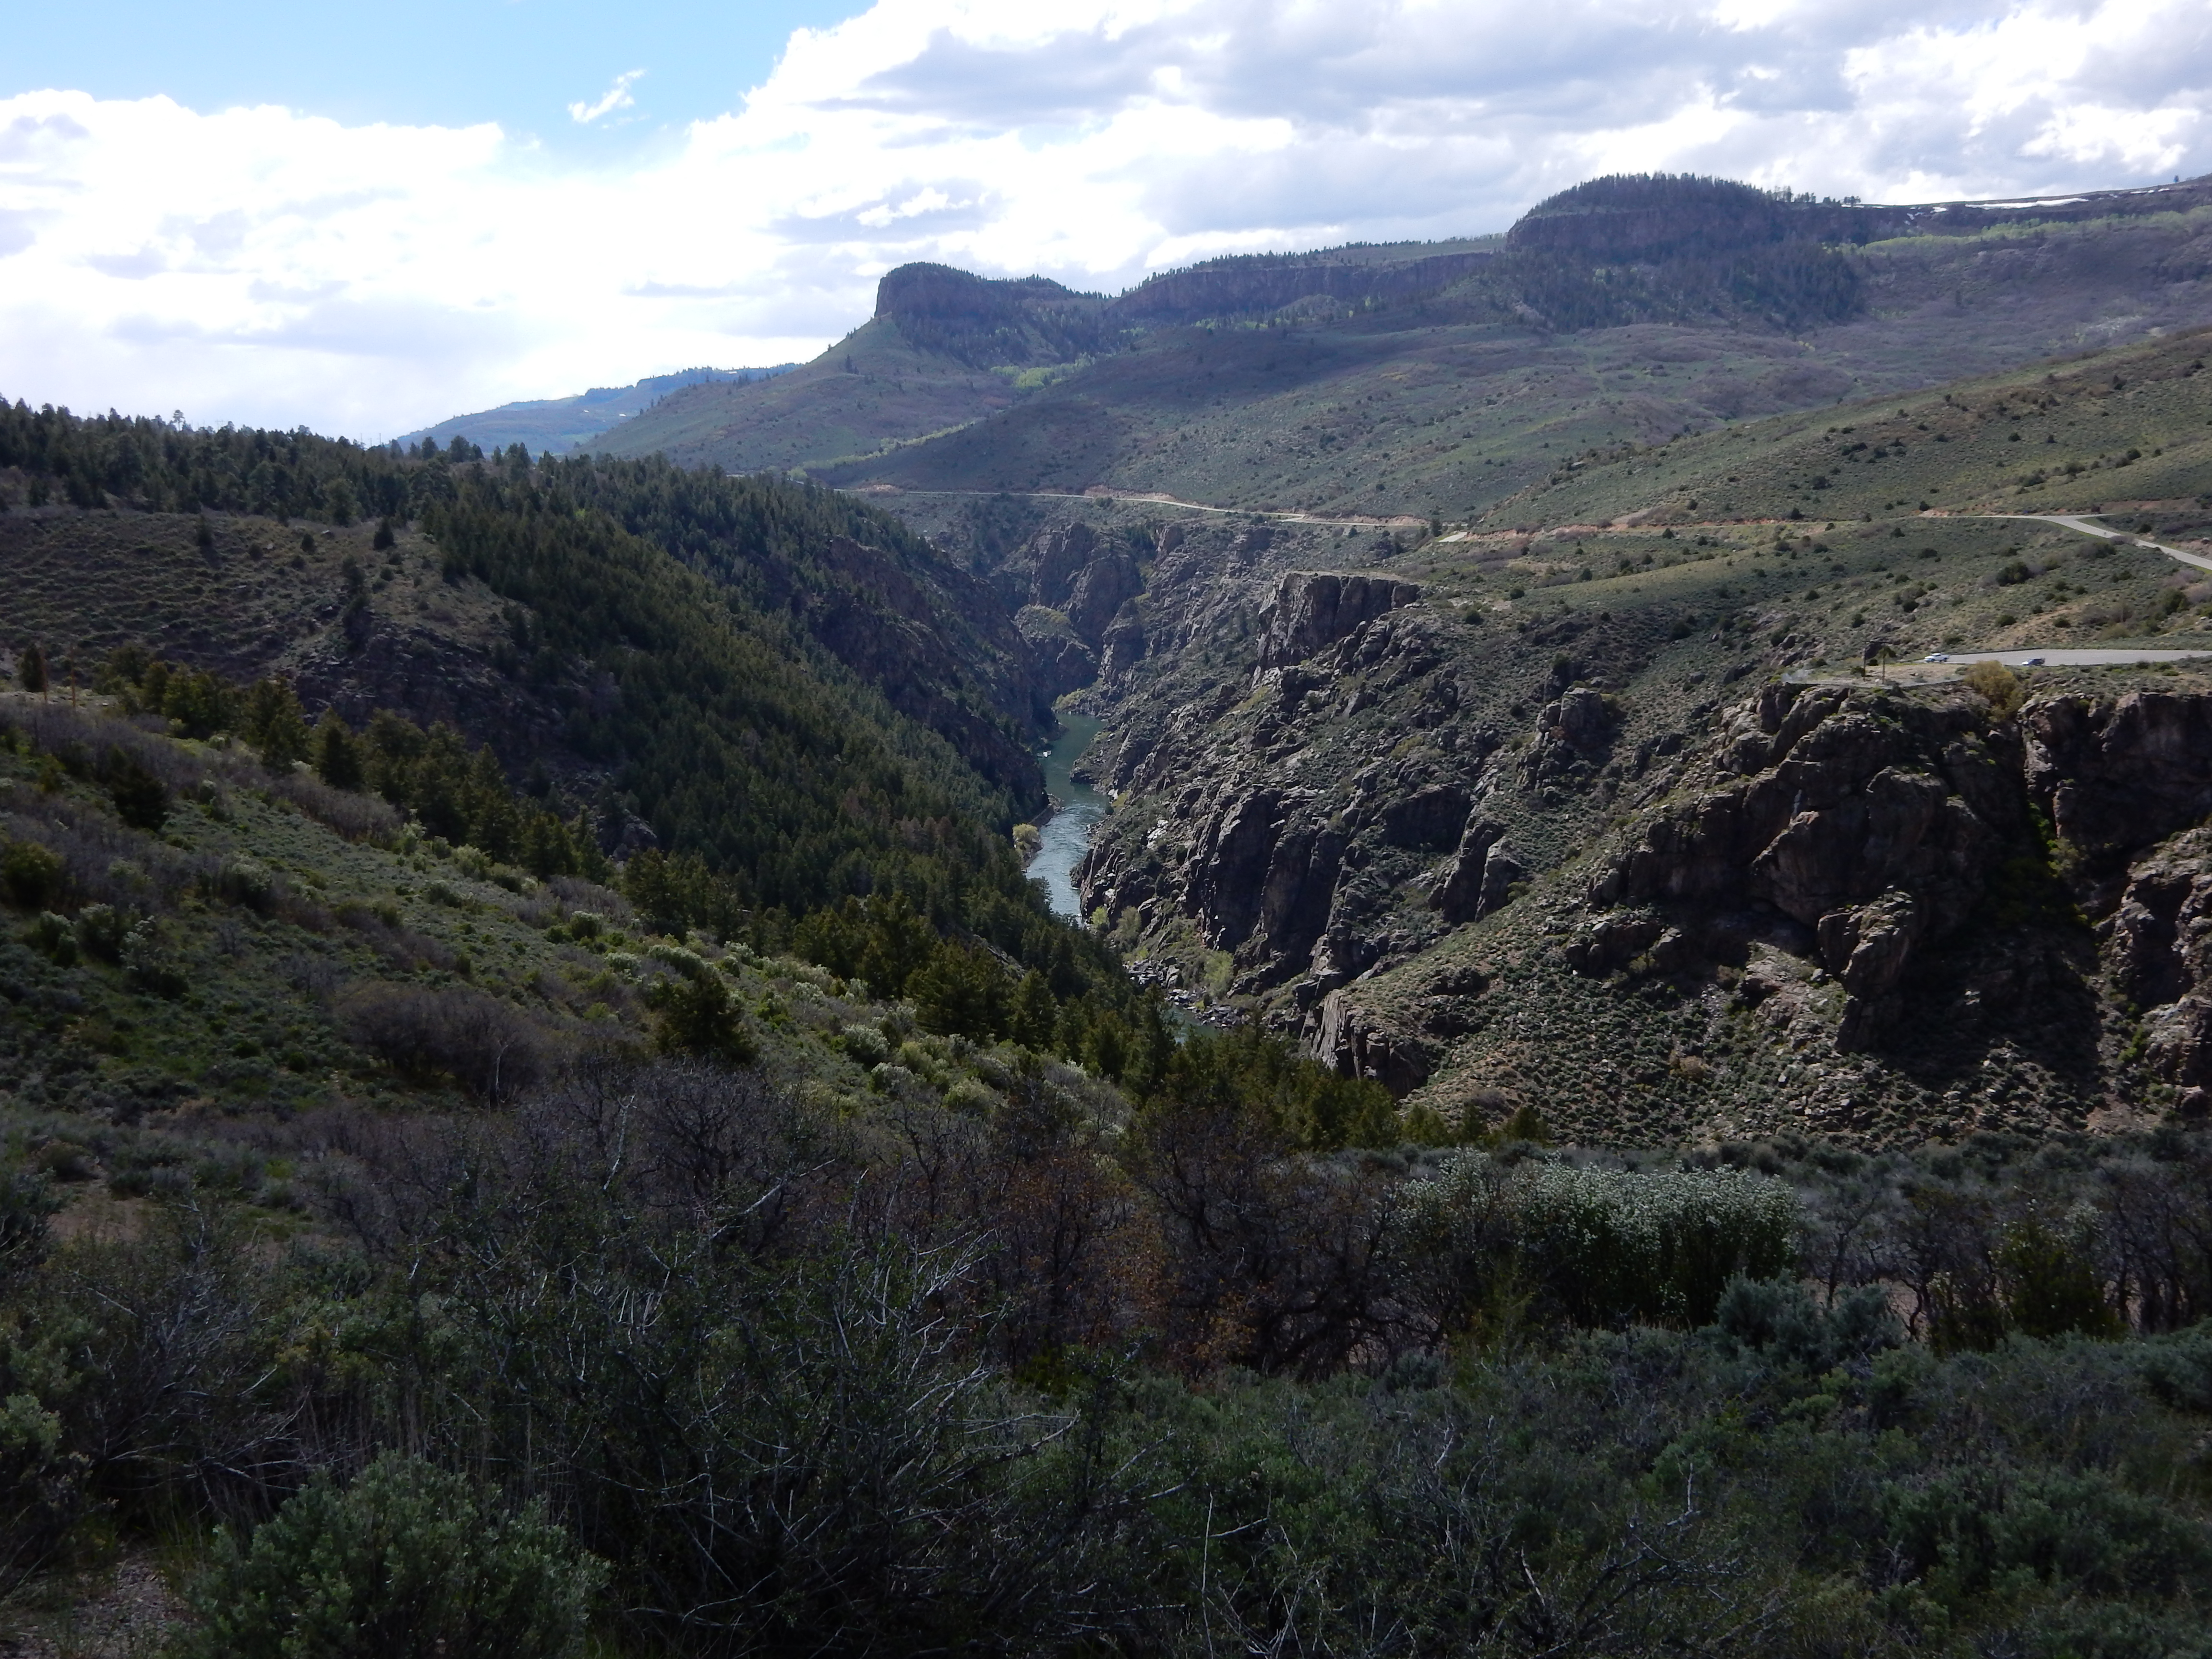 A look down the Black Canyon of the Gunnison.